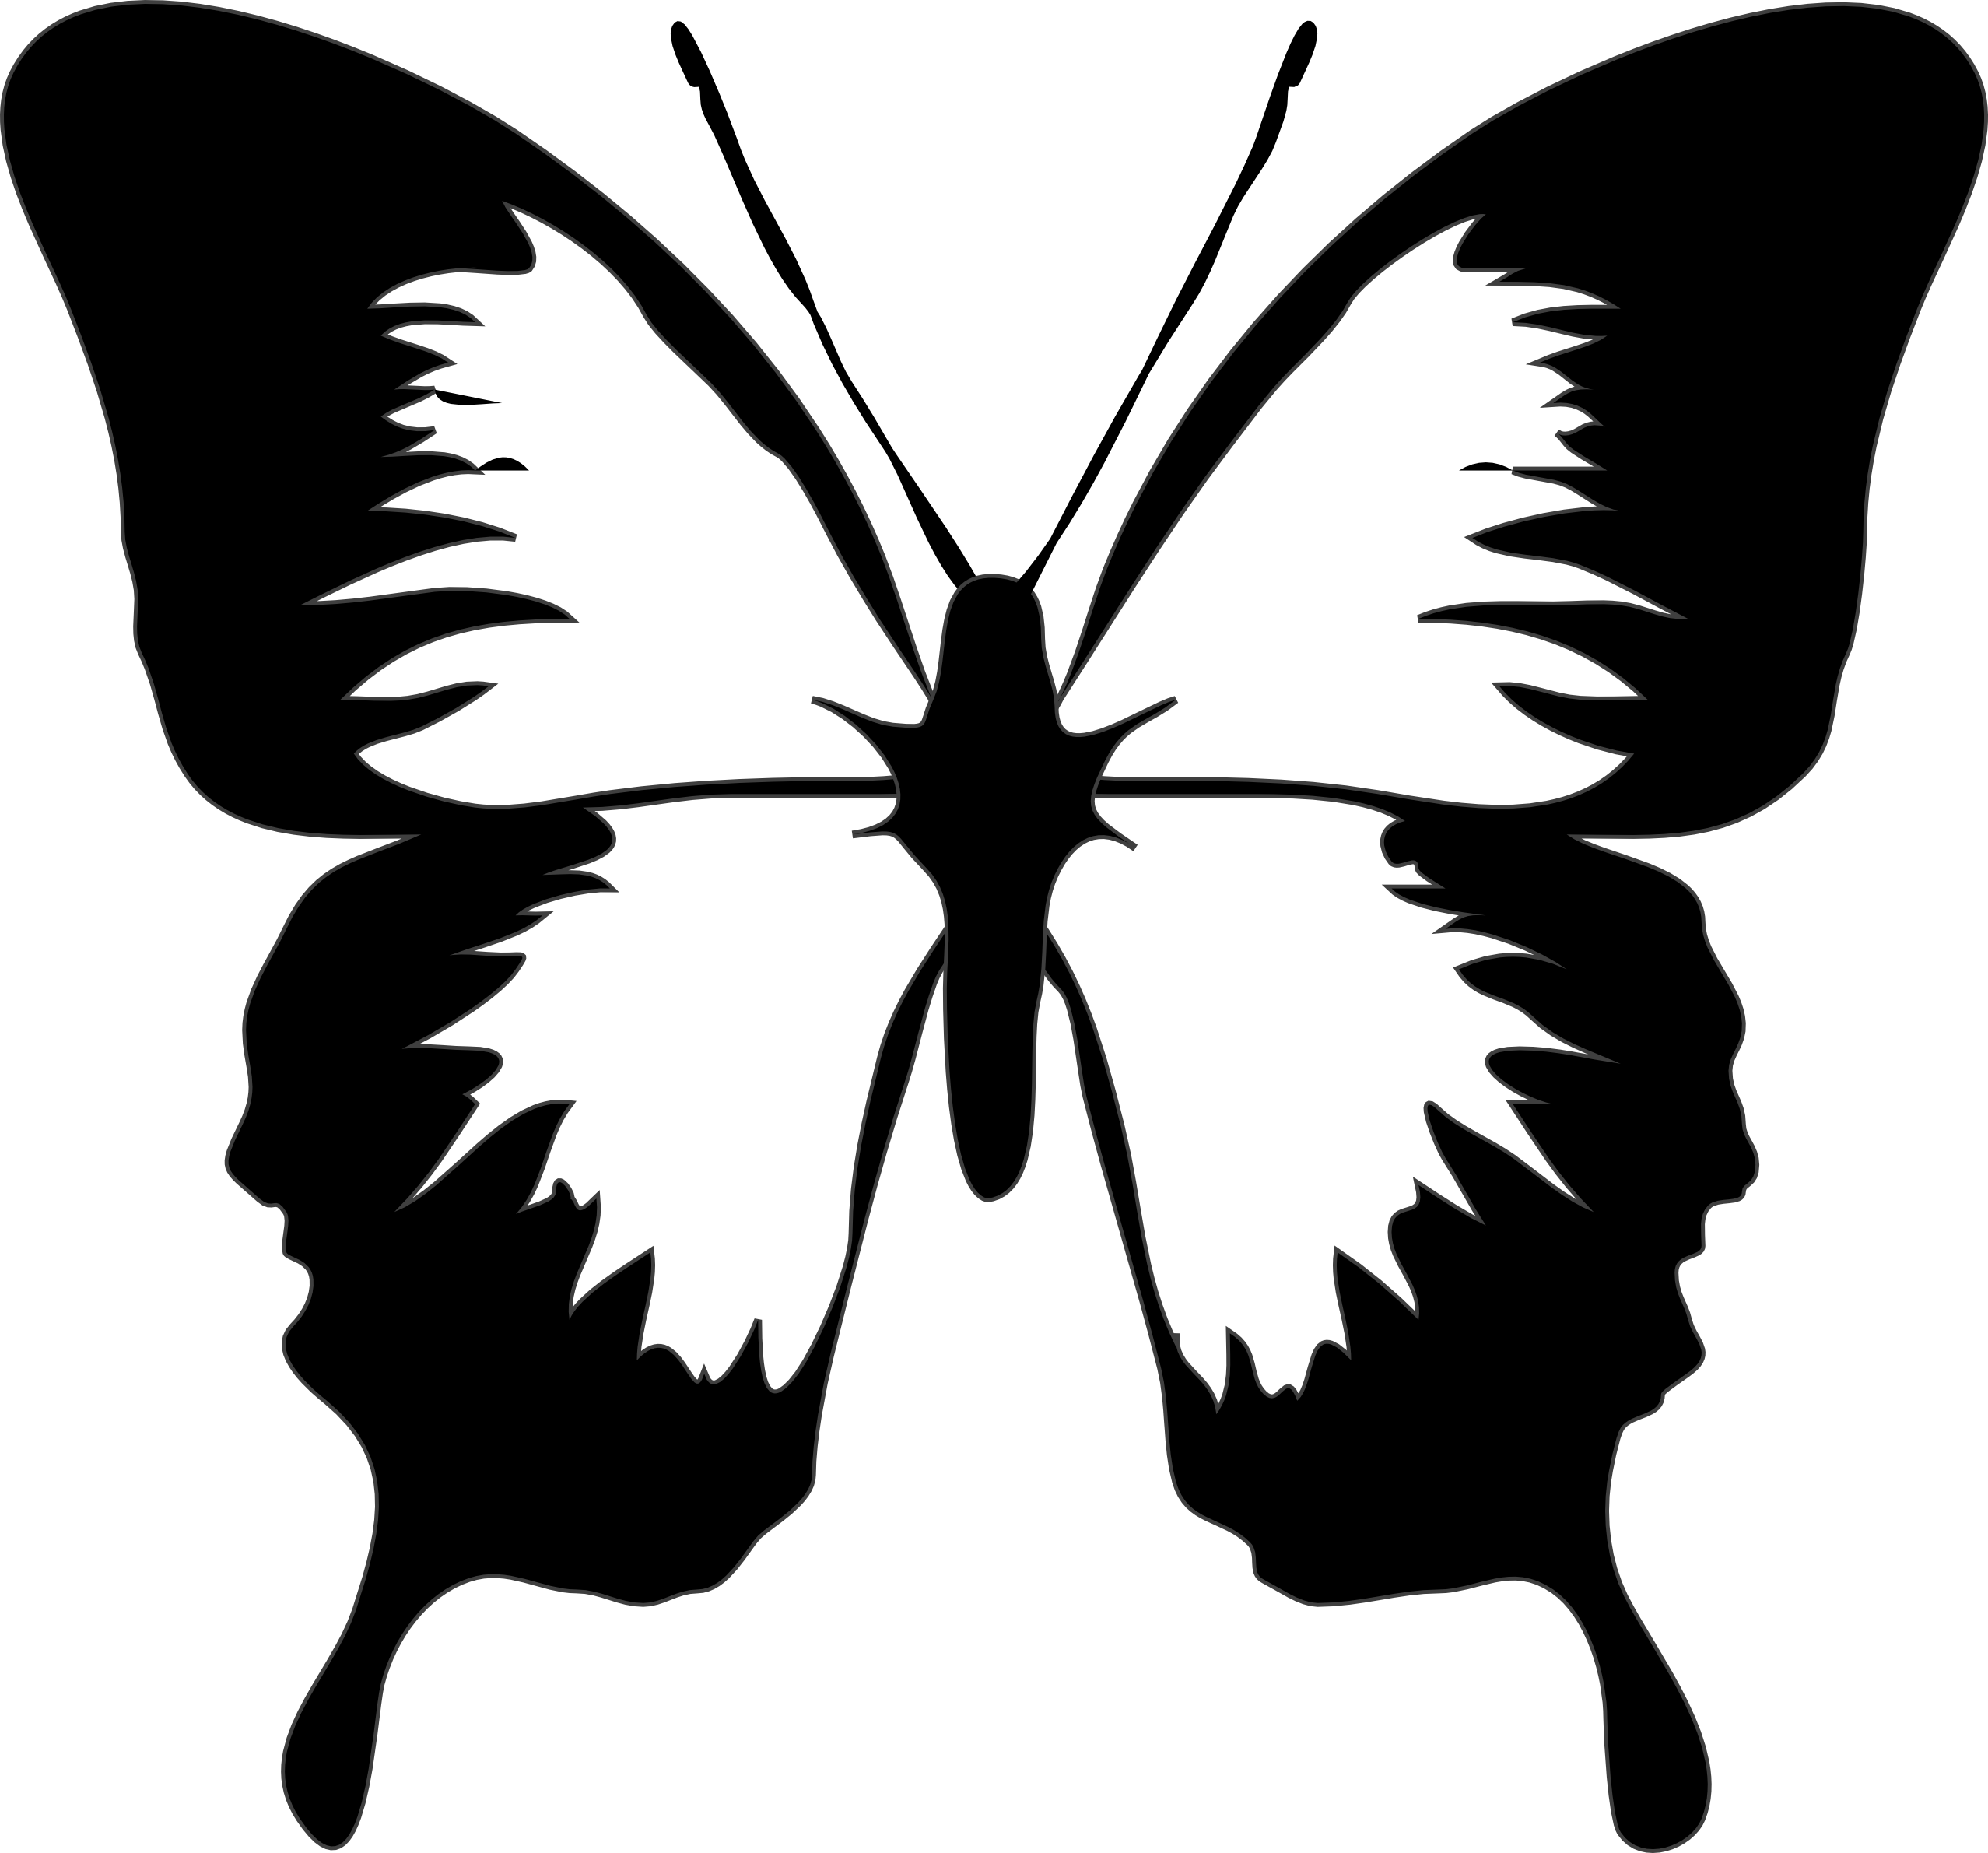 Butterfly Clip Art Black And White Nteeb9gta New York Spirit for butterfly clipart black and white for your reference